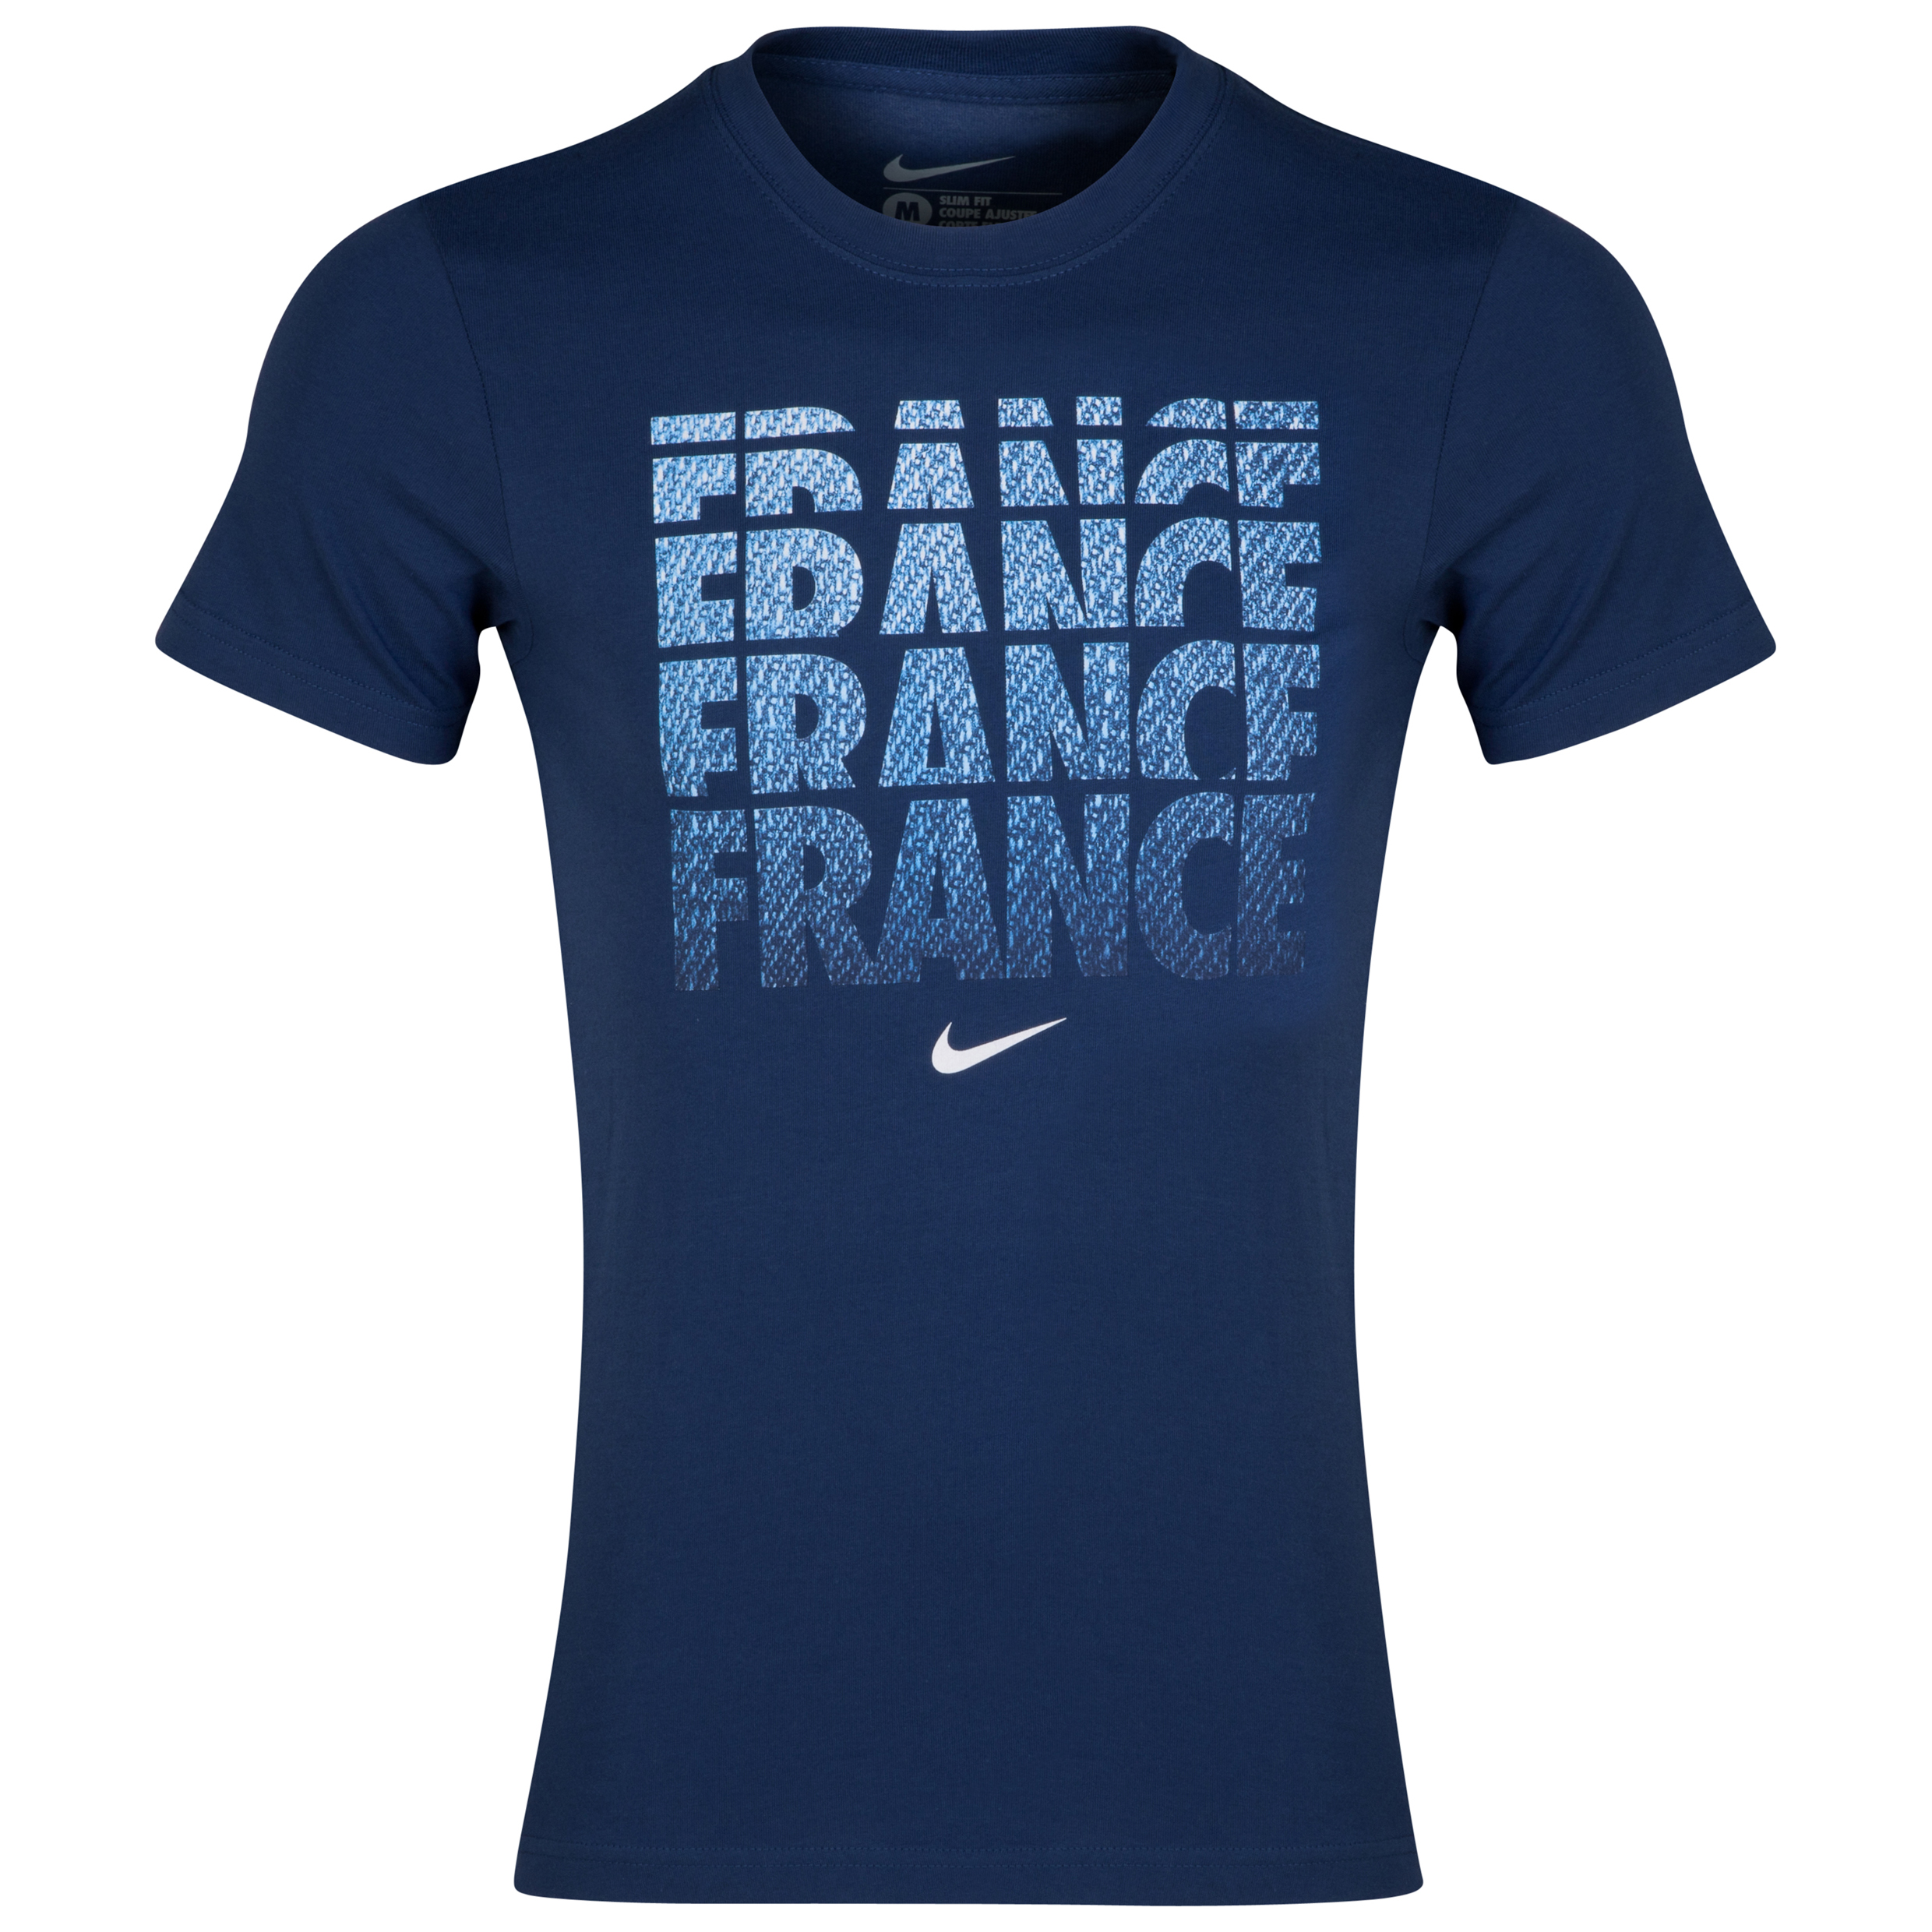 France Core Type T-Shirt Navy